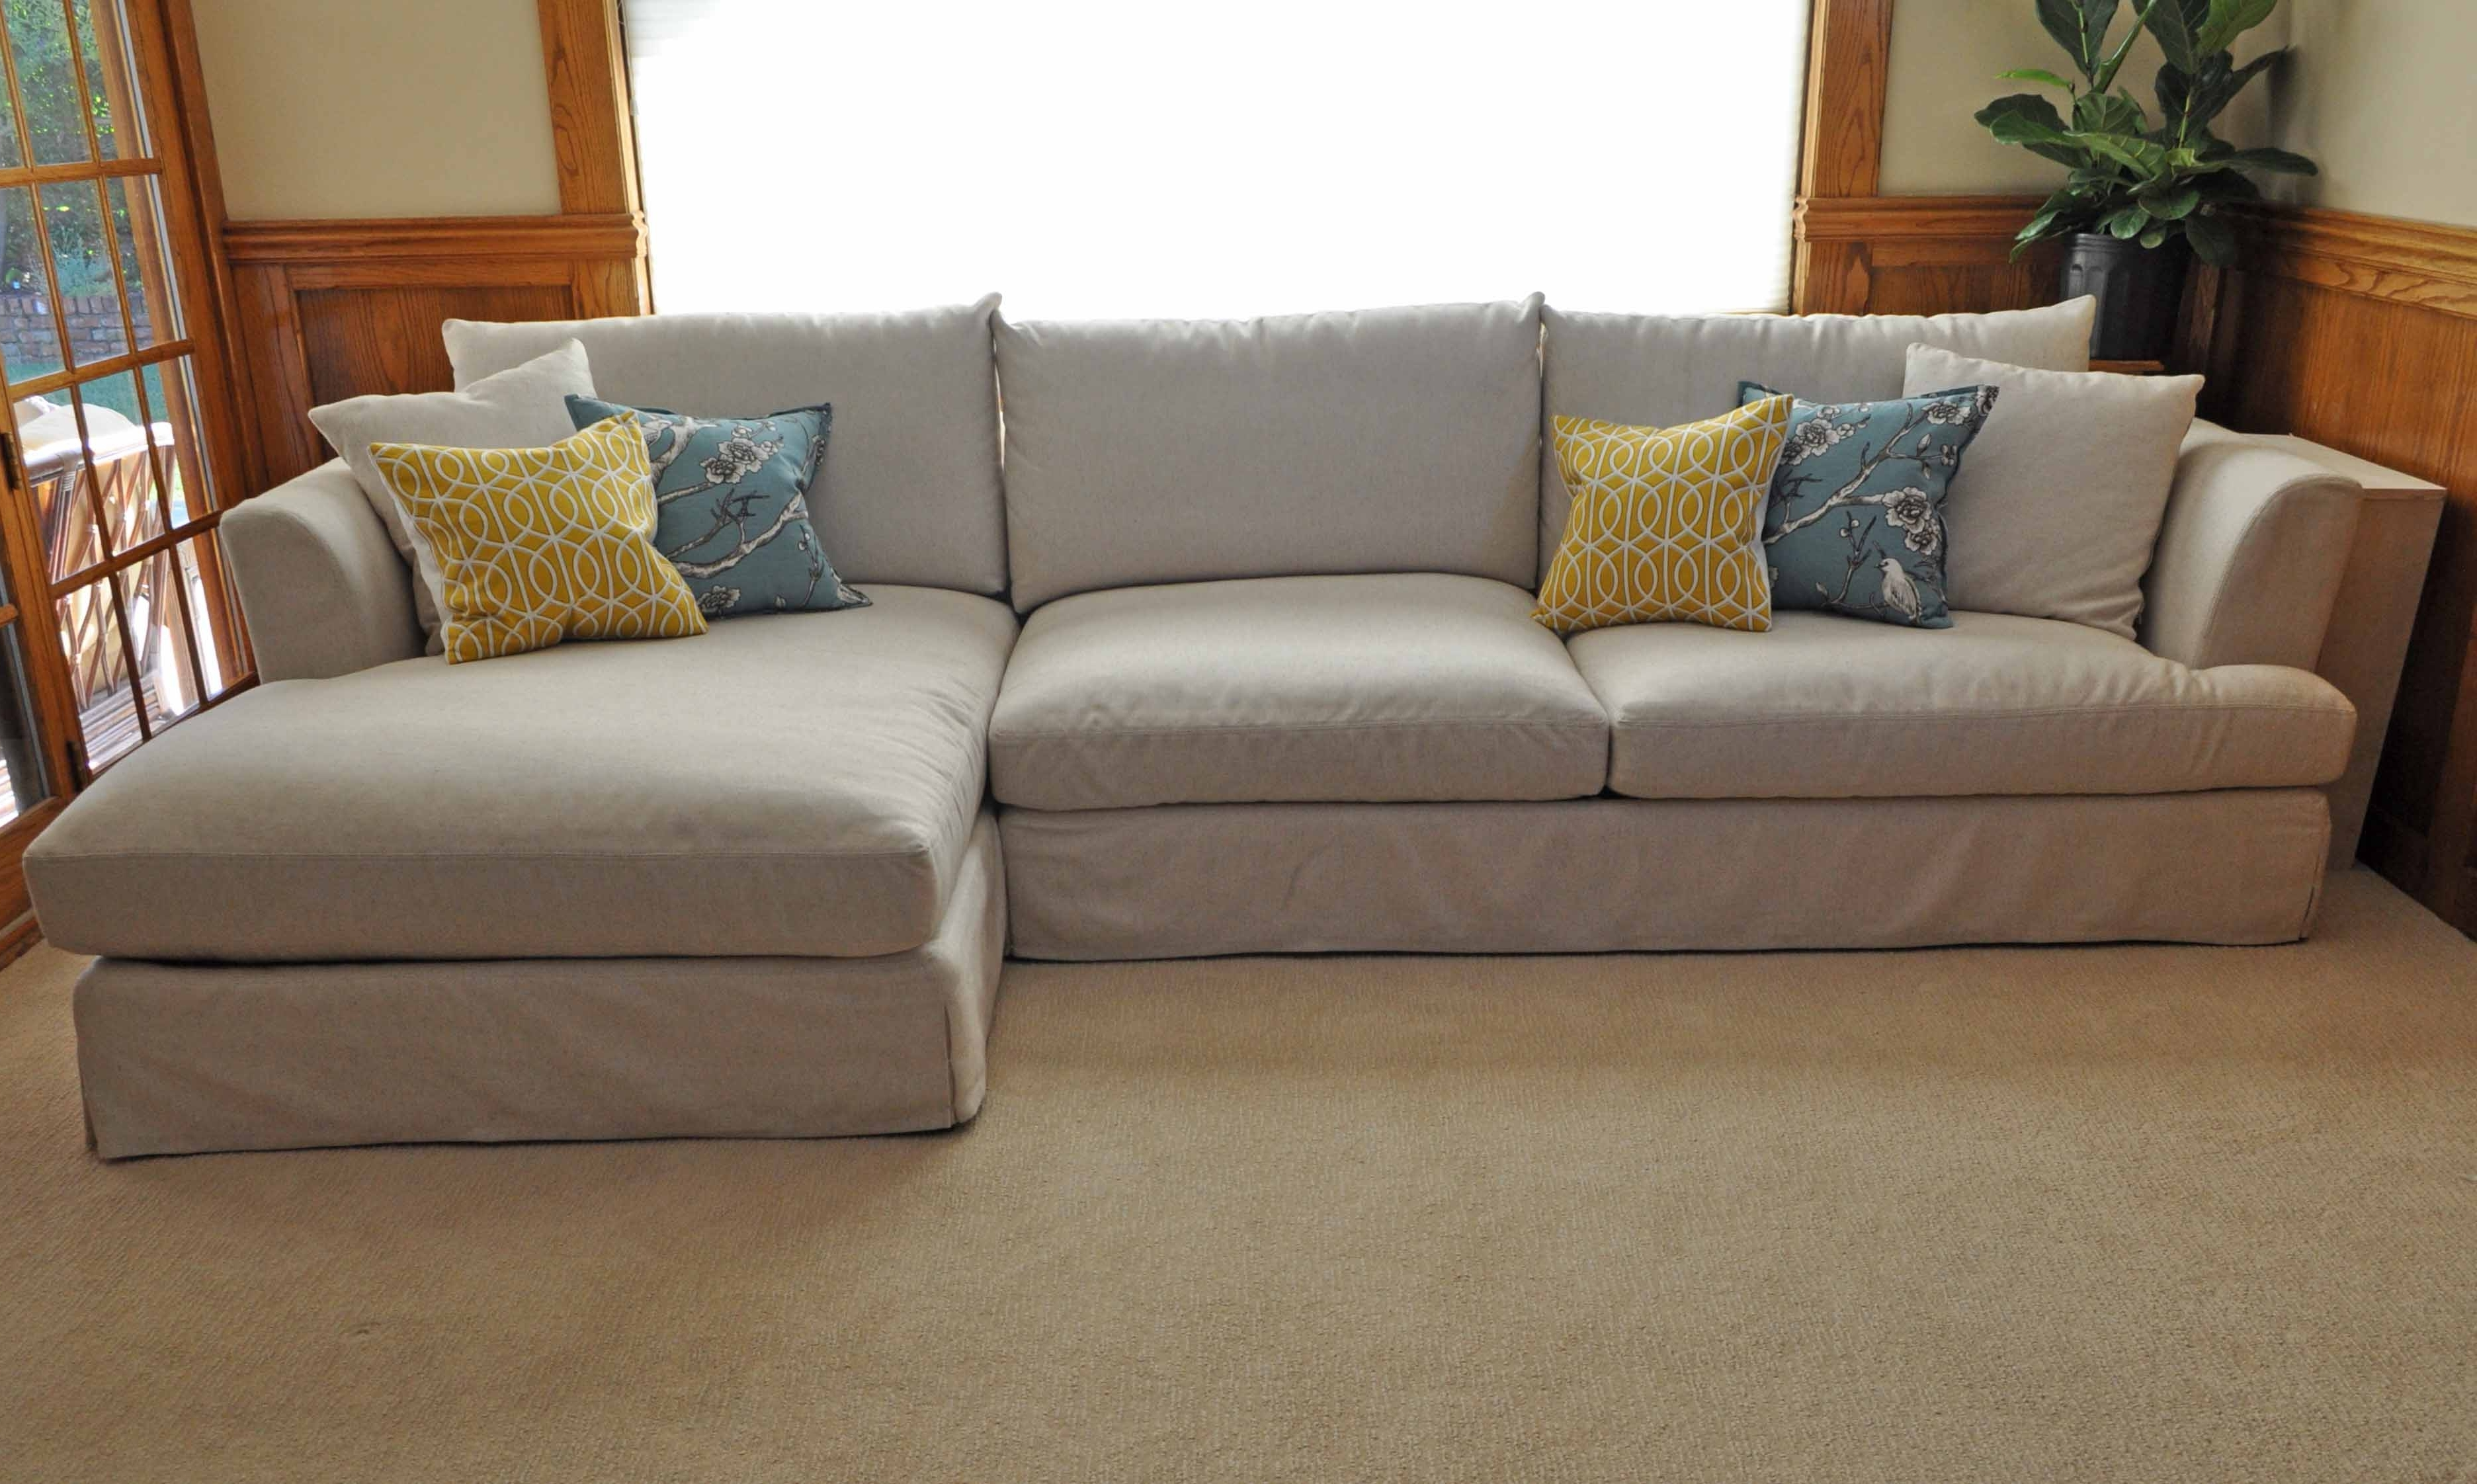 Most Recent Cream Colored Sofas With Regard To Uncategorized : Colored Sofa Within Imposing 12 Best Ideas Of (View 15 of 20)